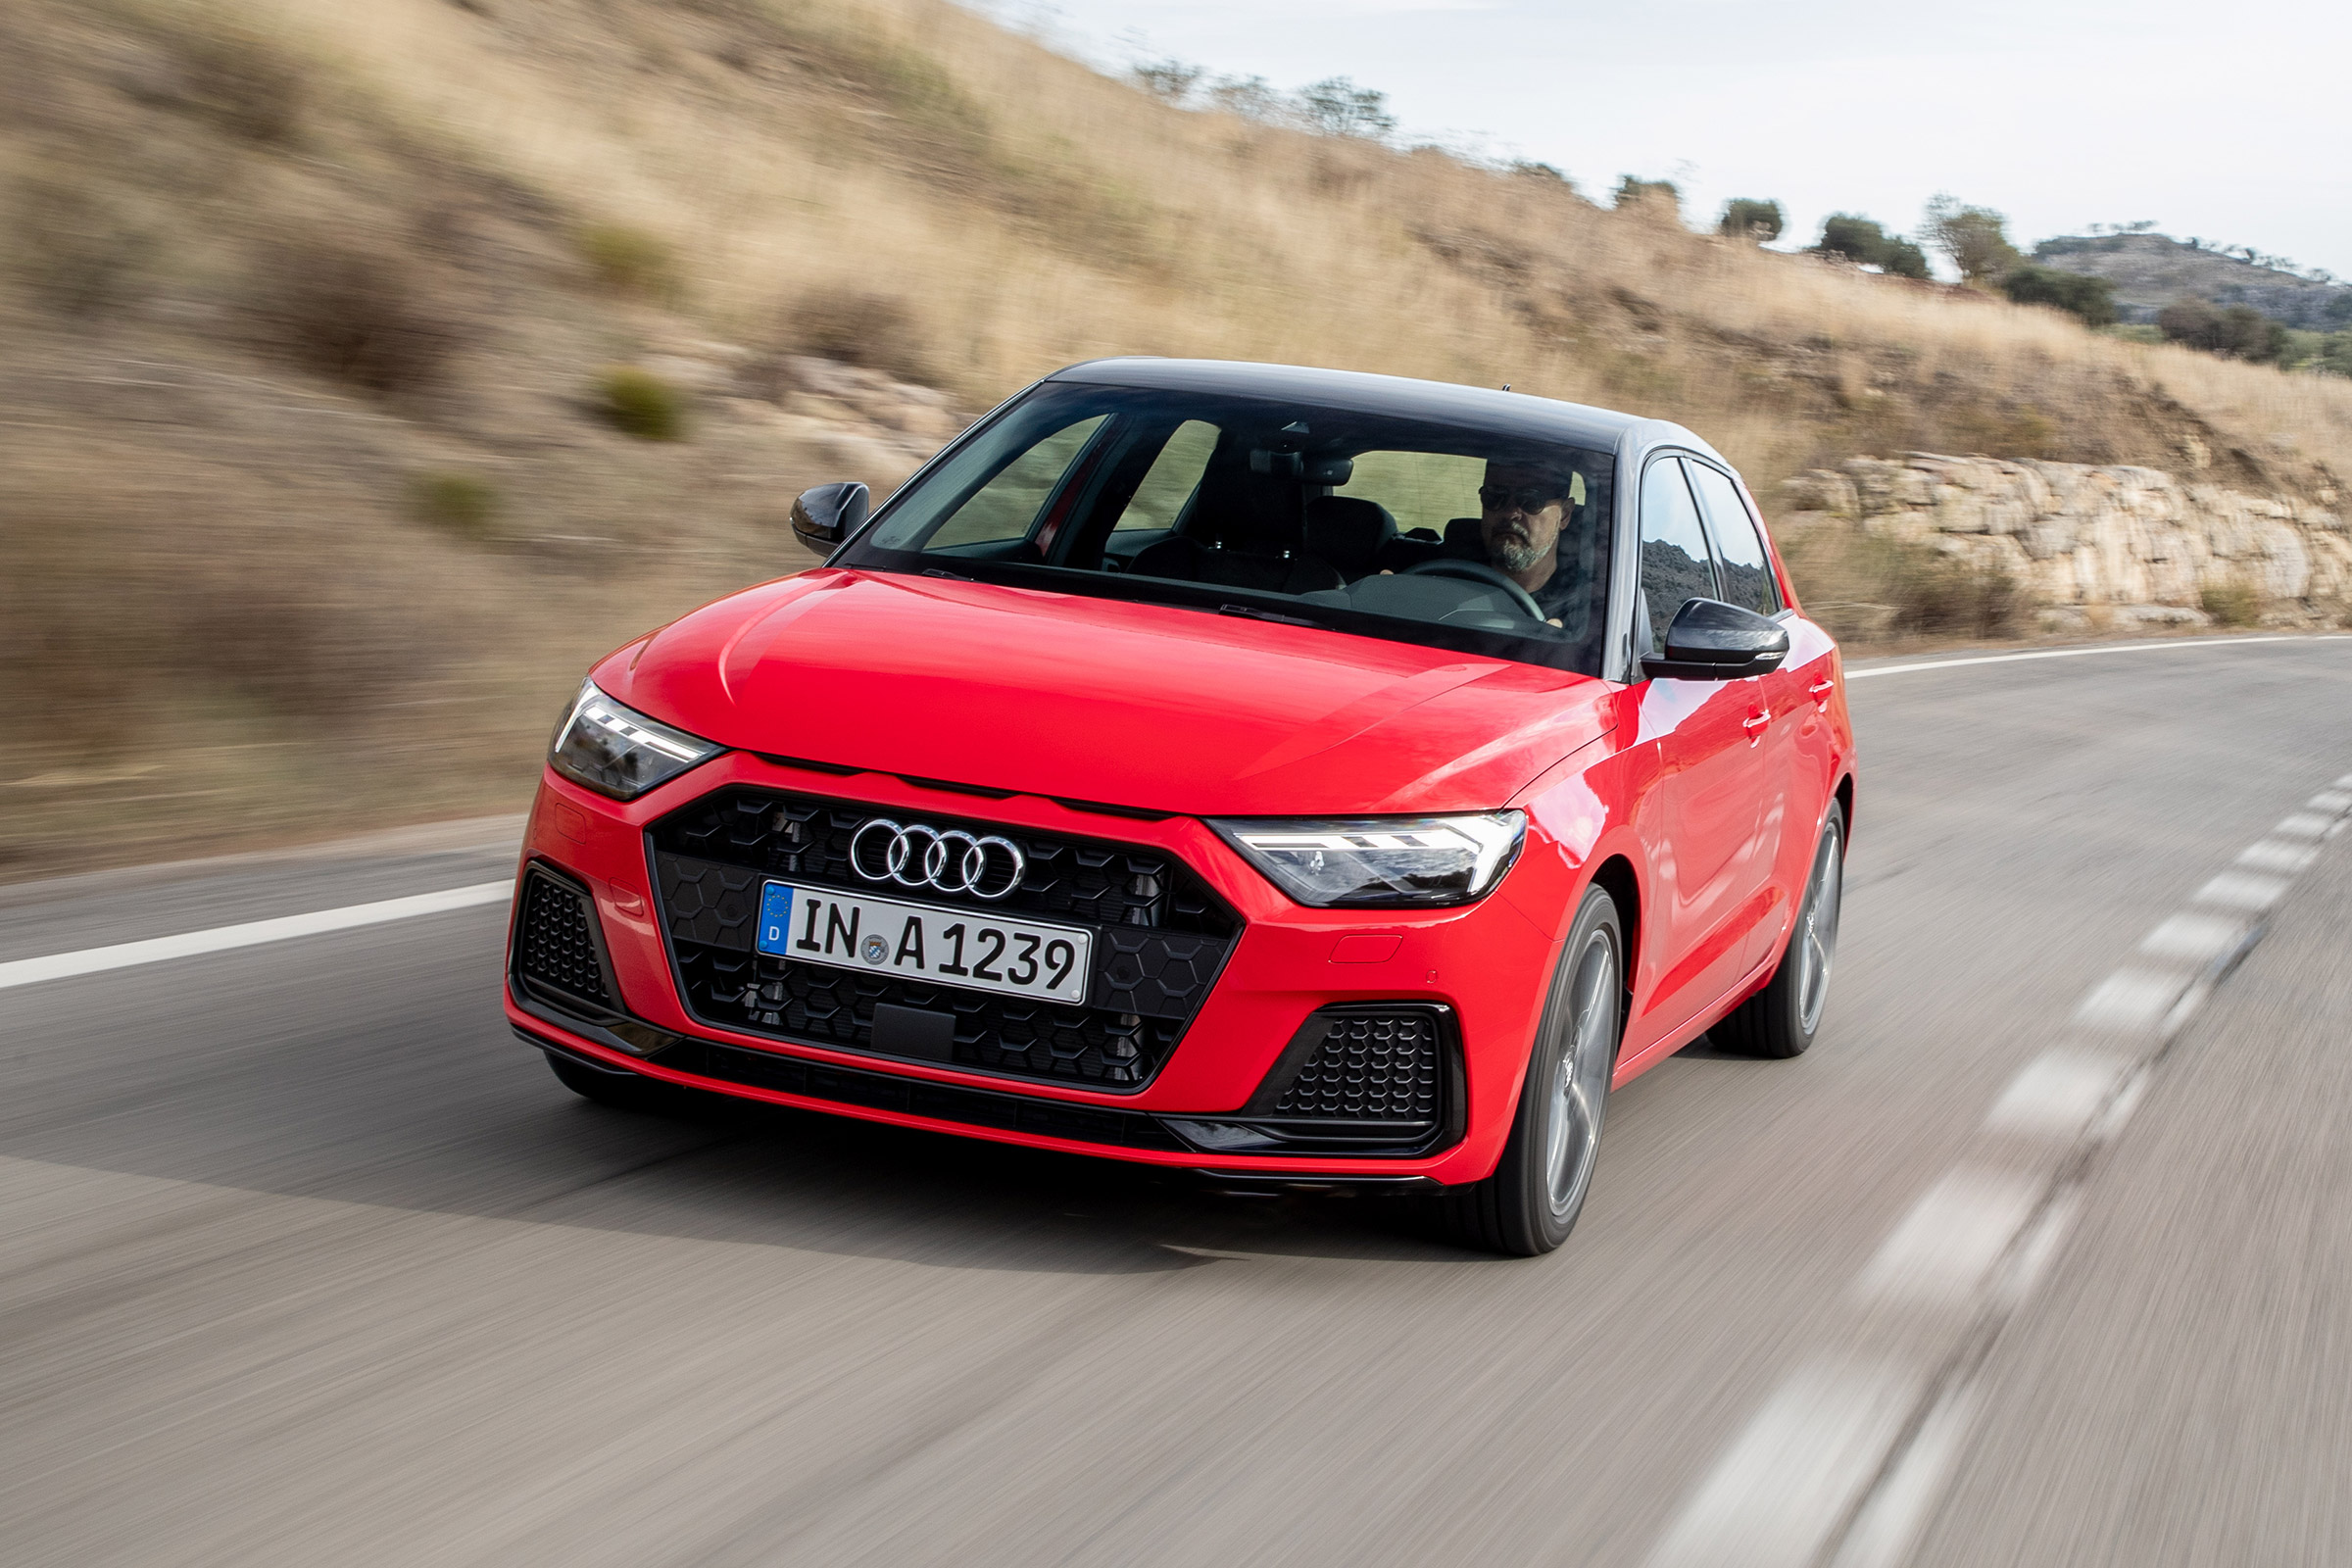 New 2018 Audi A1 Sportback Pricing And Specification Details Auto Express